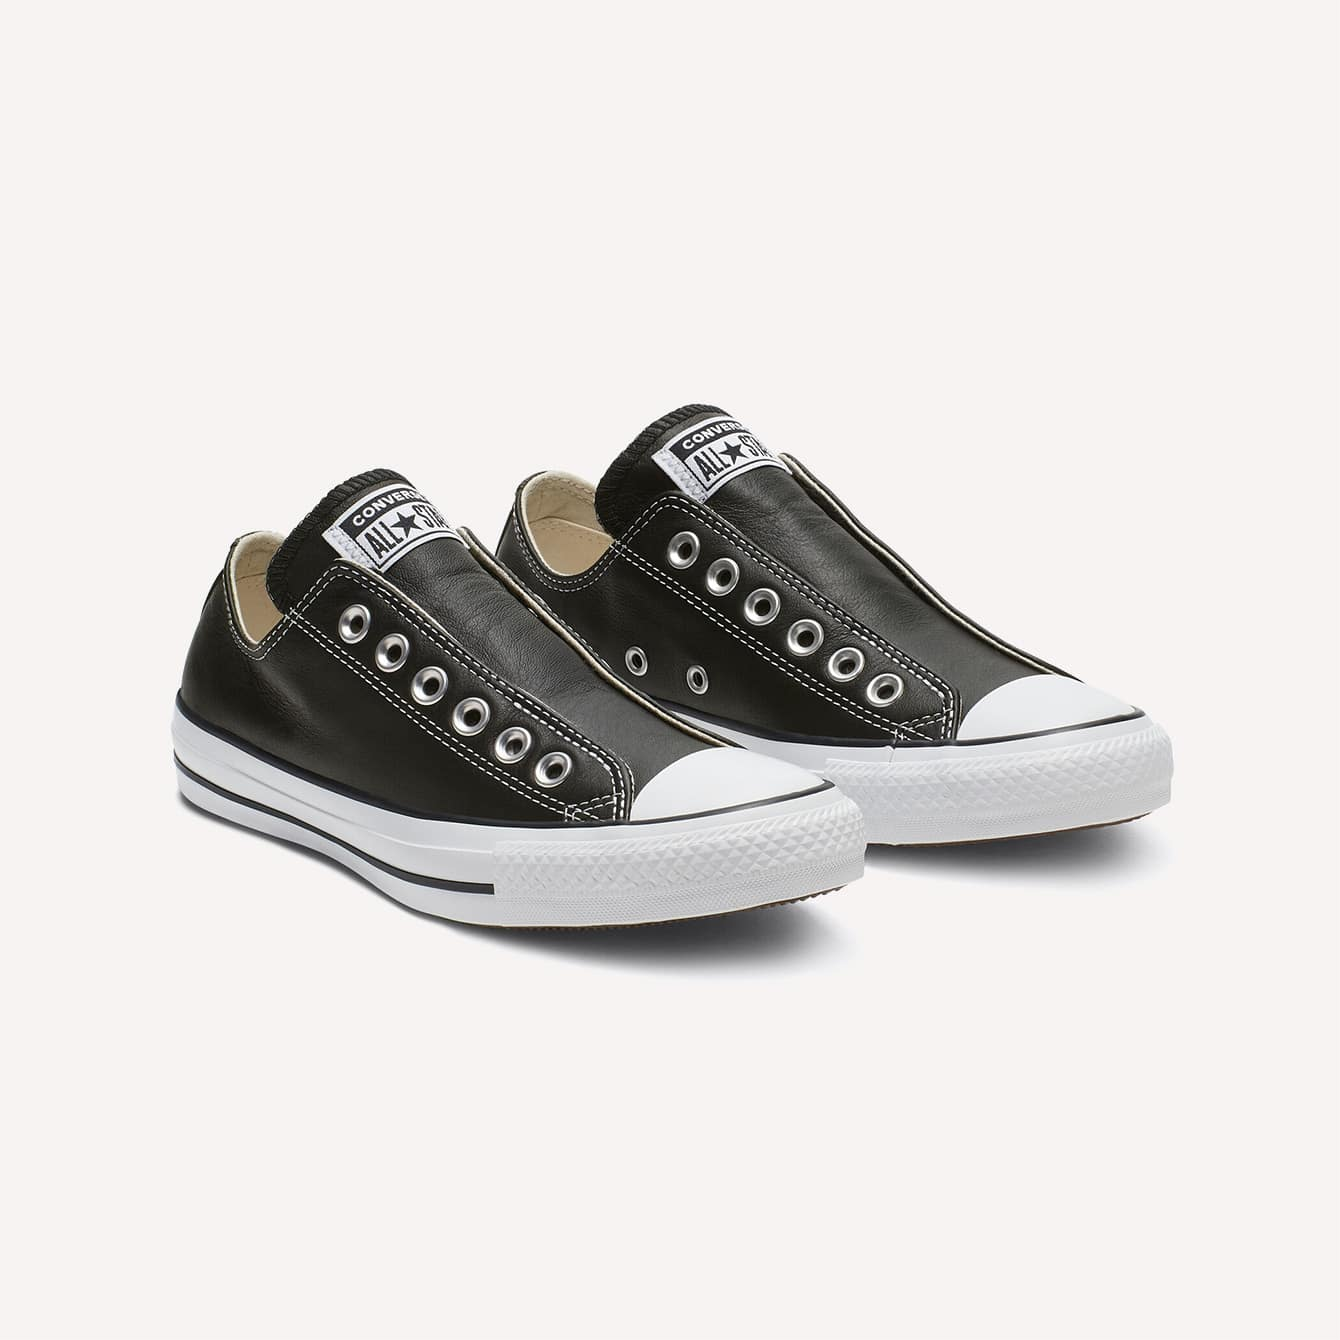 Converse Chuck Taylor, Canvas or Leather